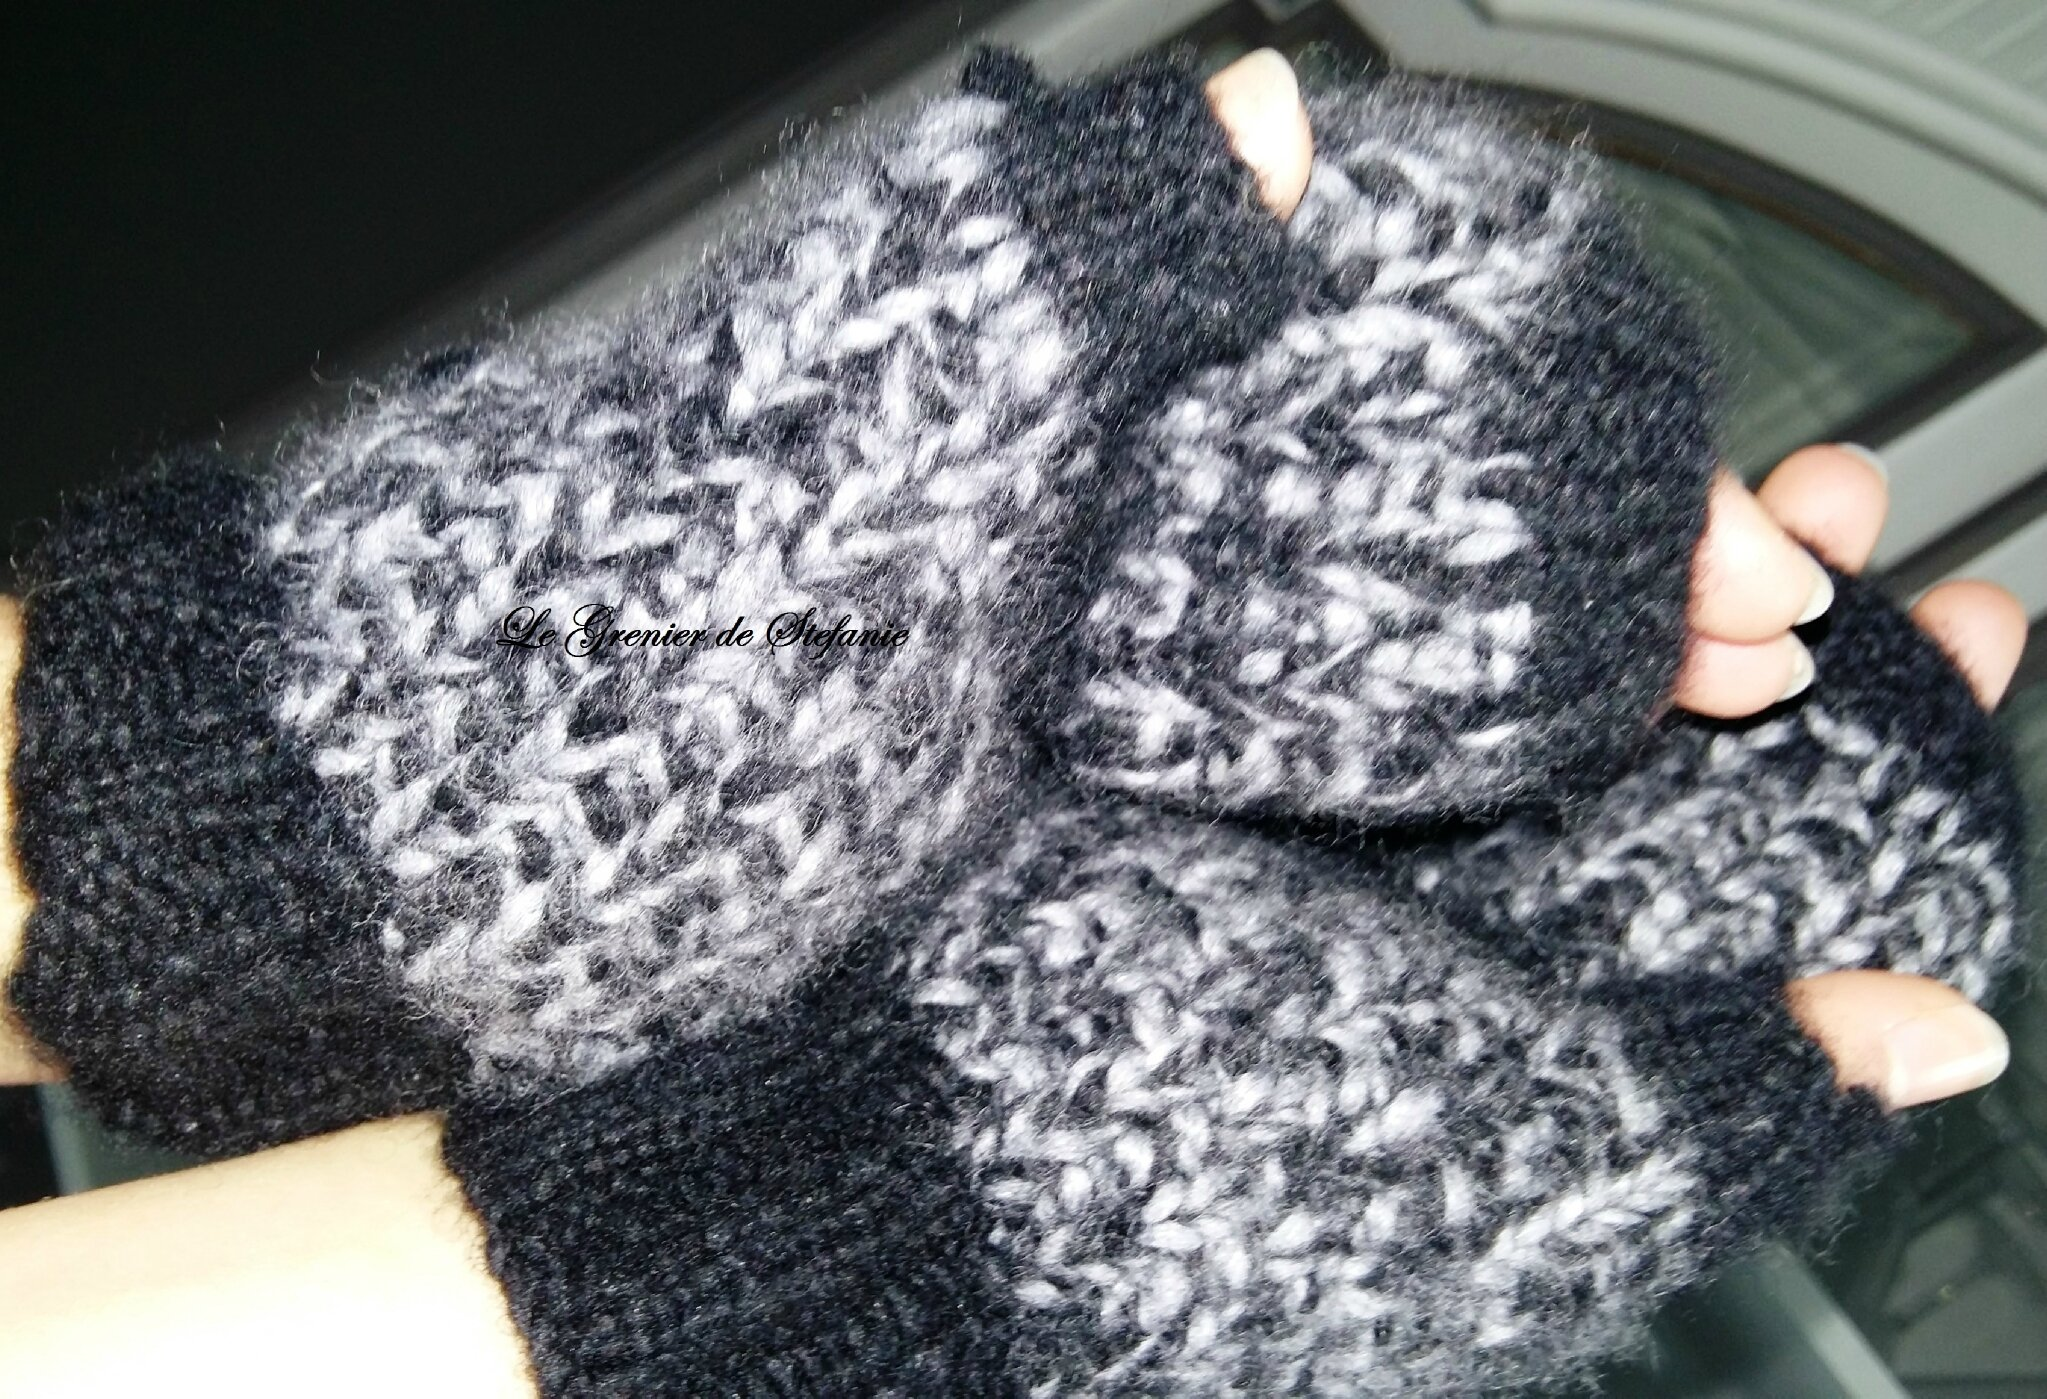 Petites mitaines pour grand froid !